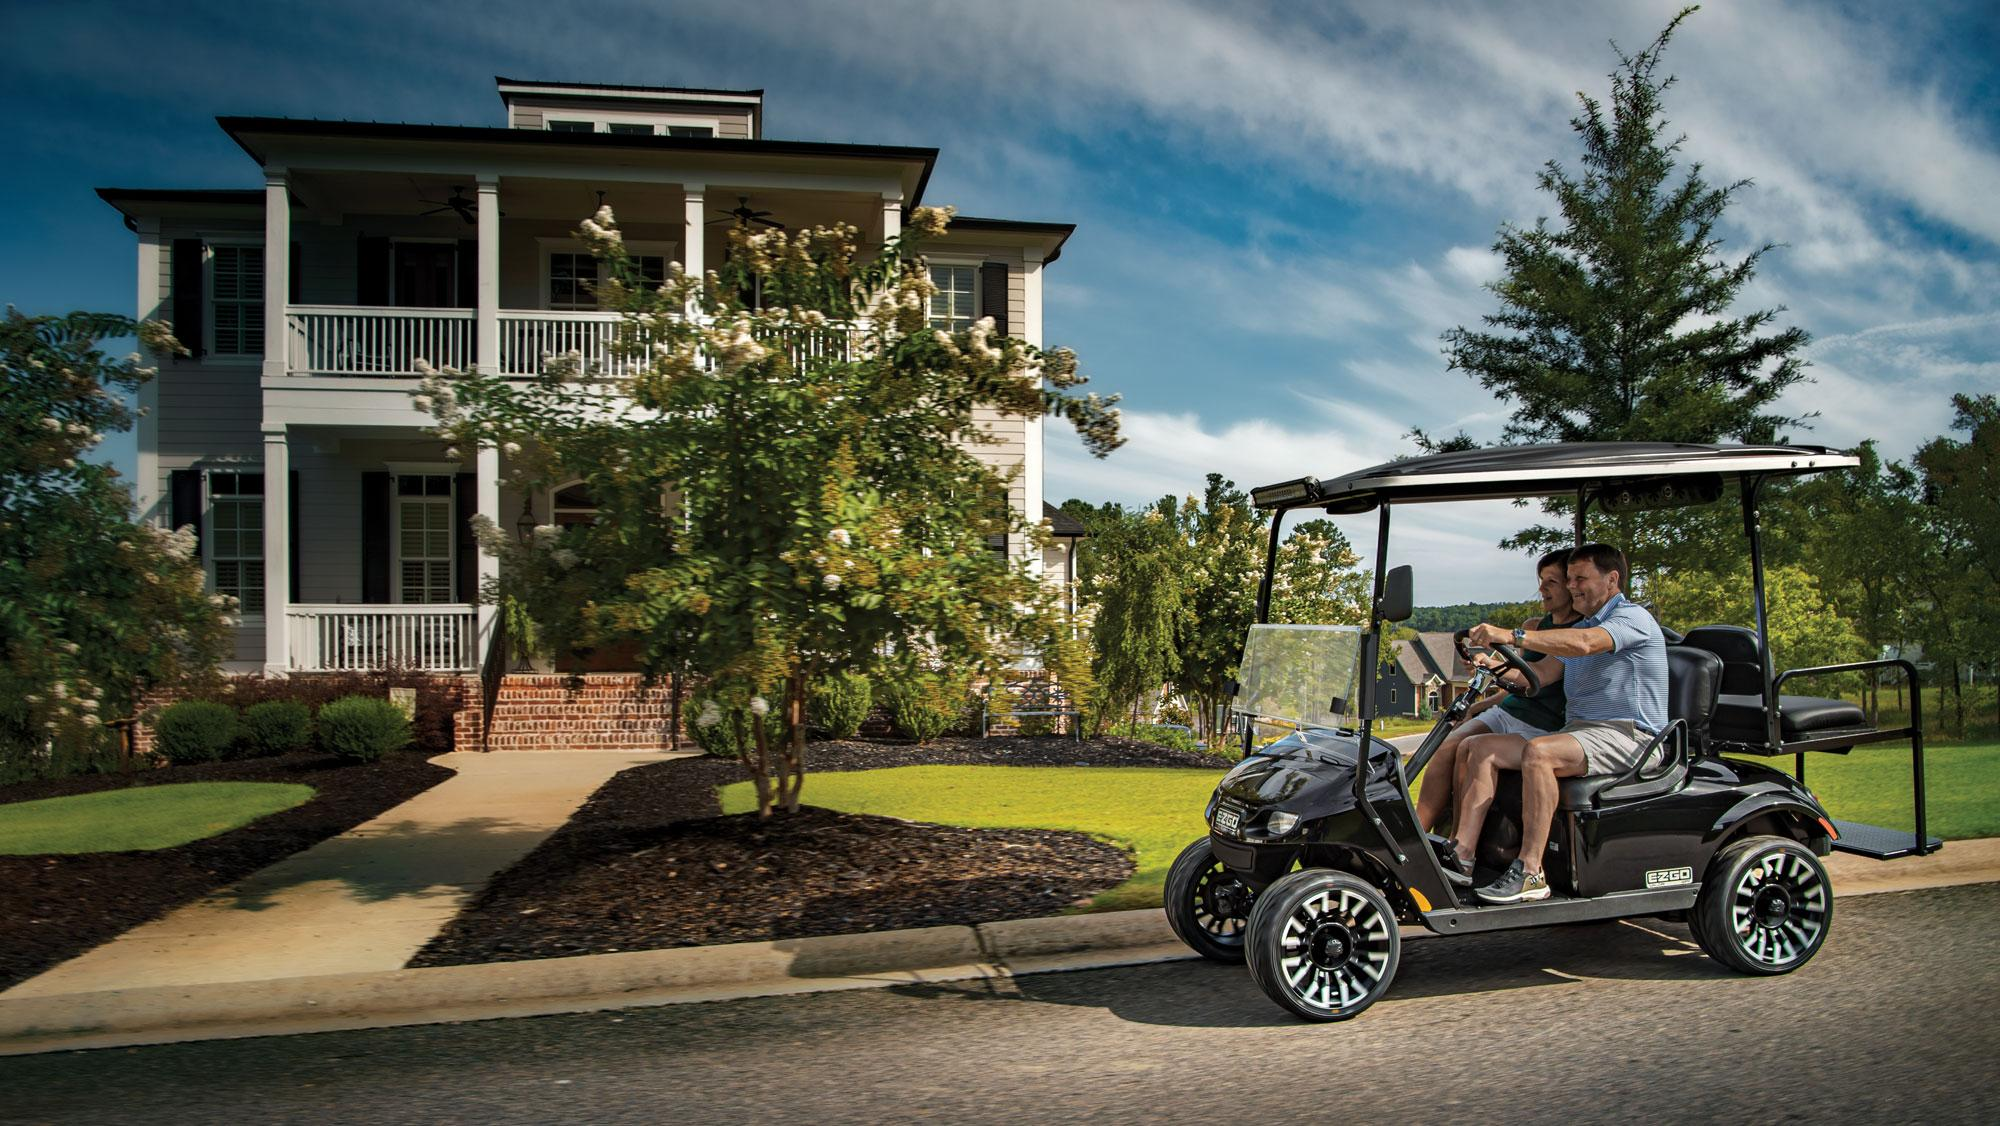 EZGO EX1 Gas Golf Cart Black Valor Driving